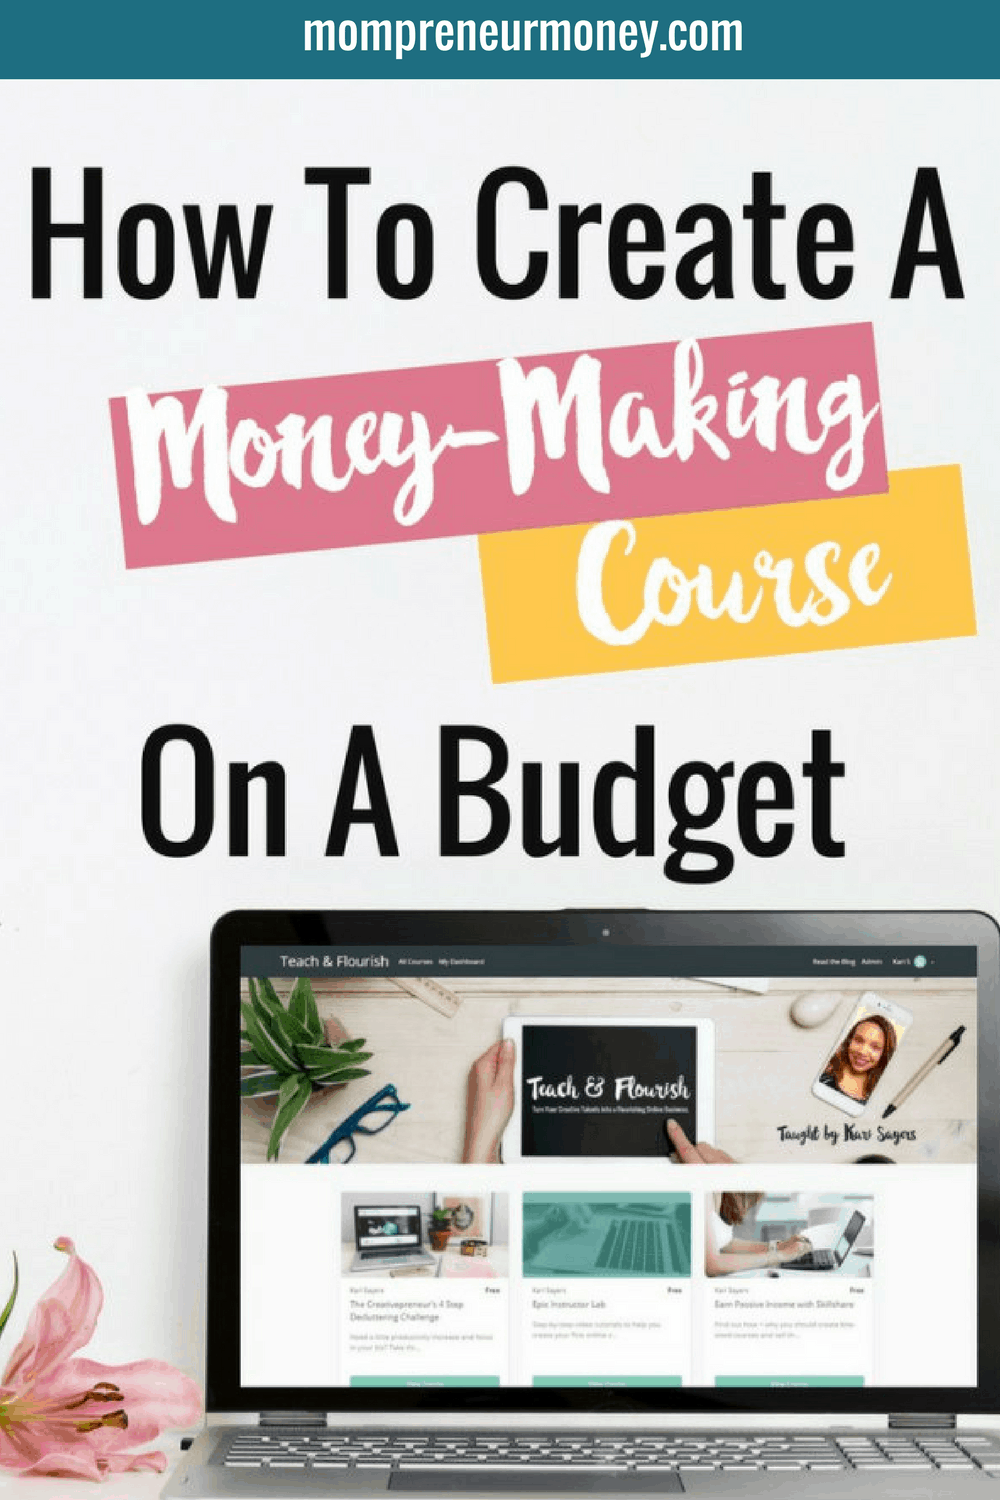 Are you ready to package what you know into a course, but you don't want to spend hundreds of dollars on software and equipment? Here's how I created my first ecourse for less than $50. Click through to the full blog post.